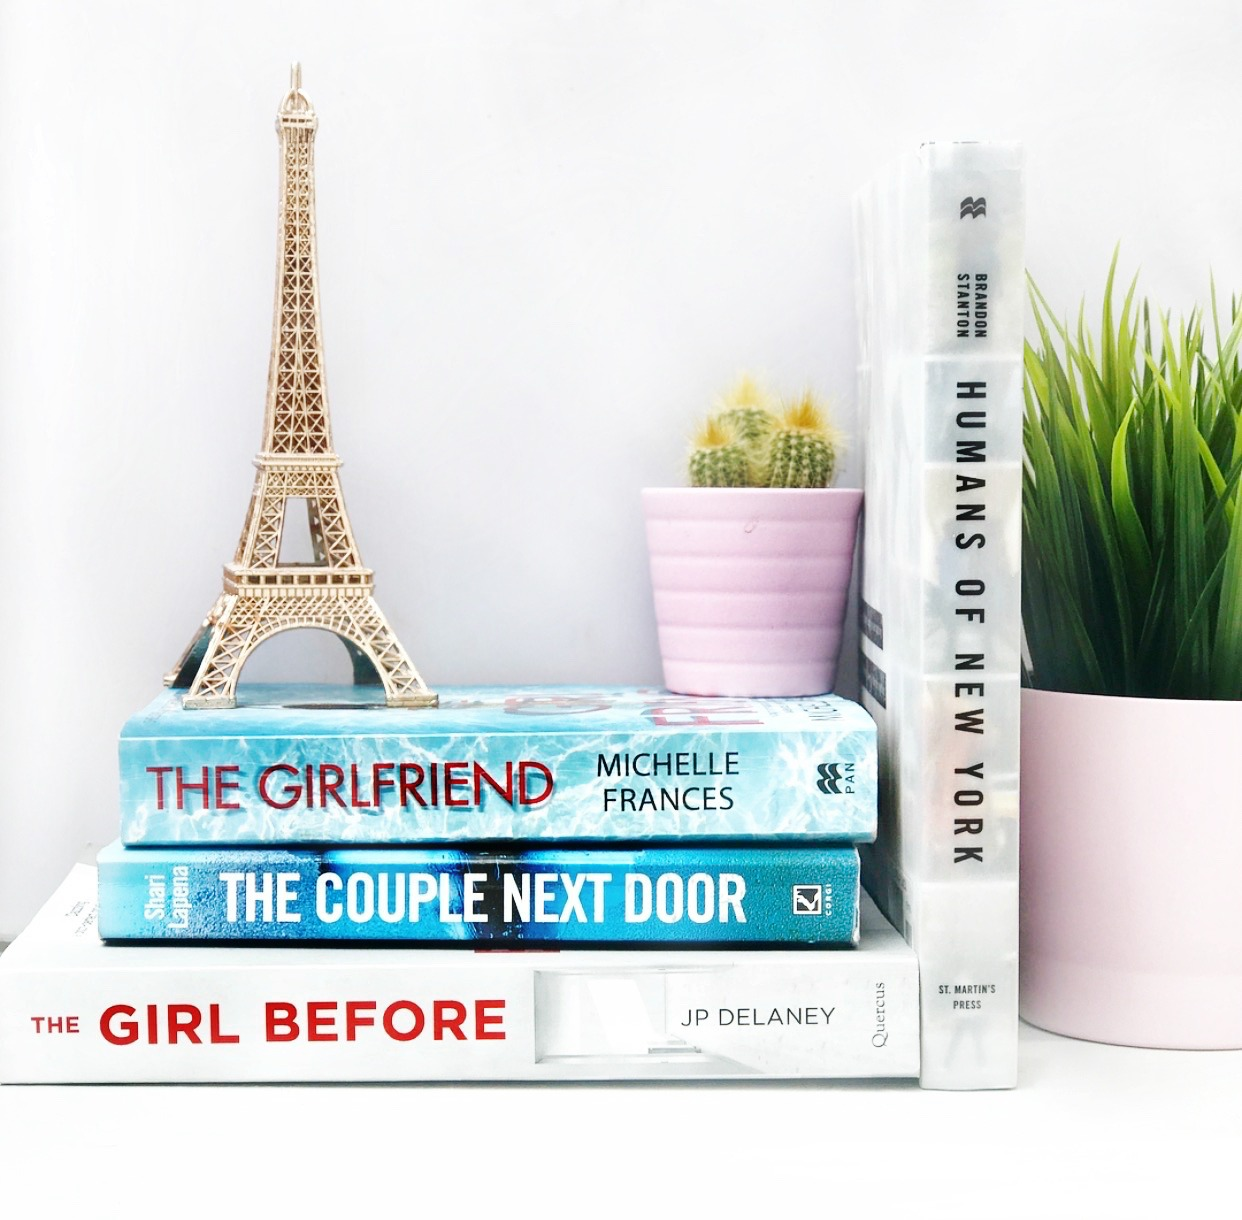 THE BOOK RECOMMENDATIONS